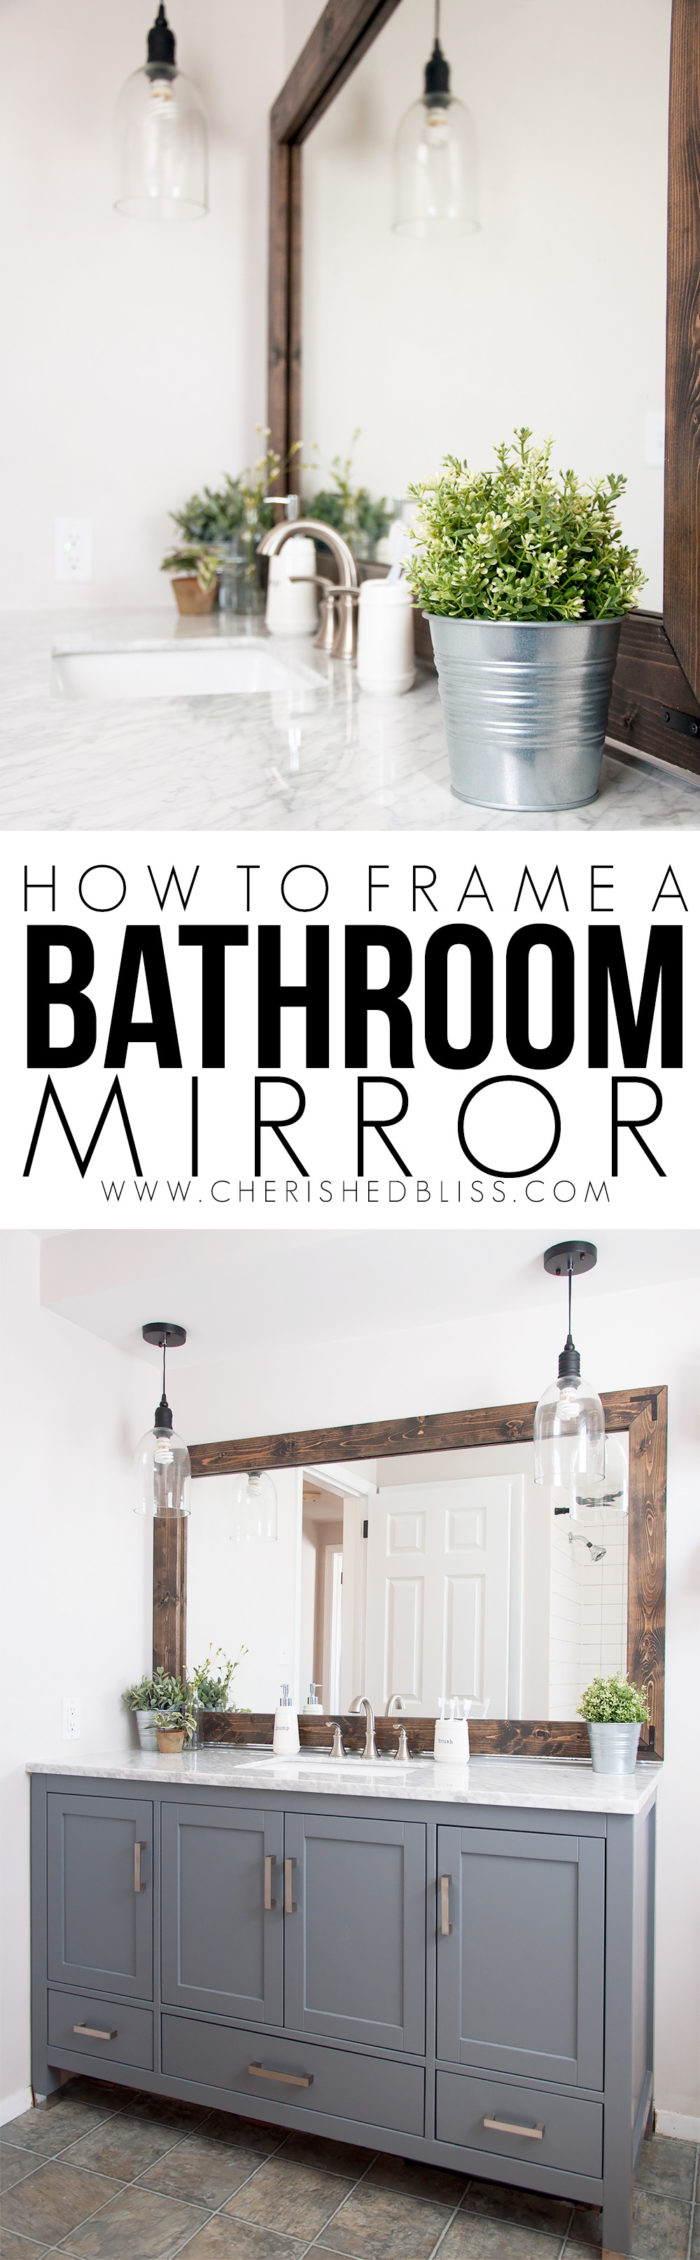 Improve The Value Of Your Bathroom With This Easy Tutorial On How To Frame  A Bathroom